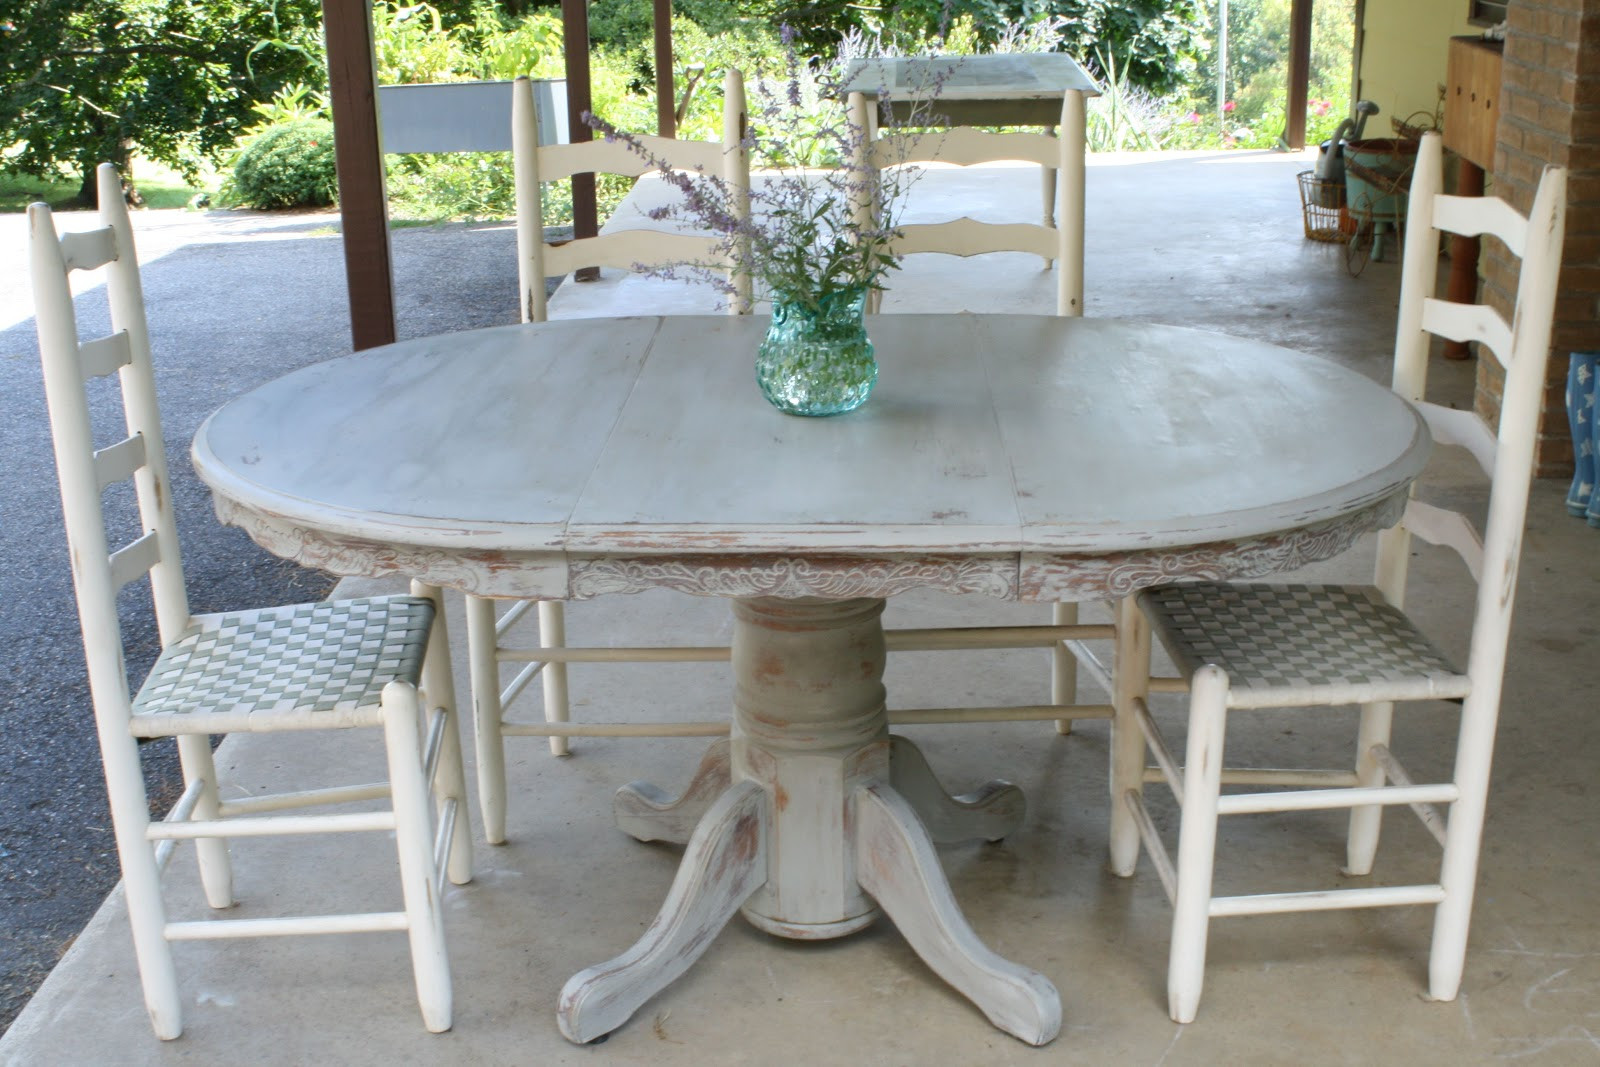 Best ideas about Gray Dining Table . Save or Pin Weathered Paris Gray Dining Table Cassie Bustamante Now.